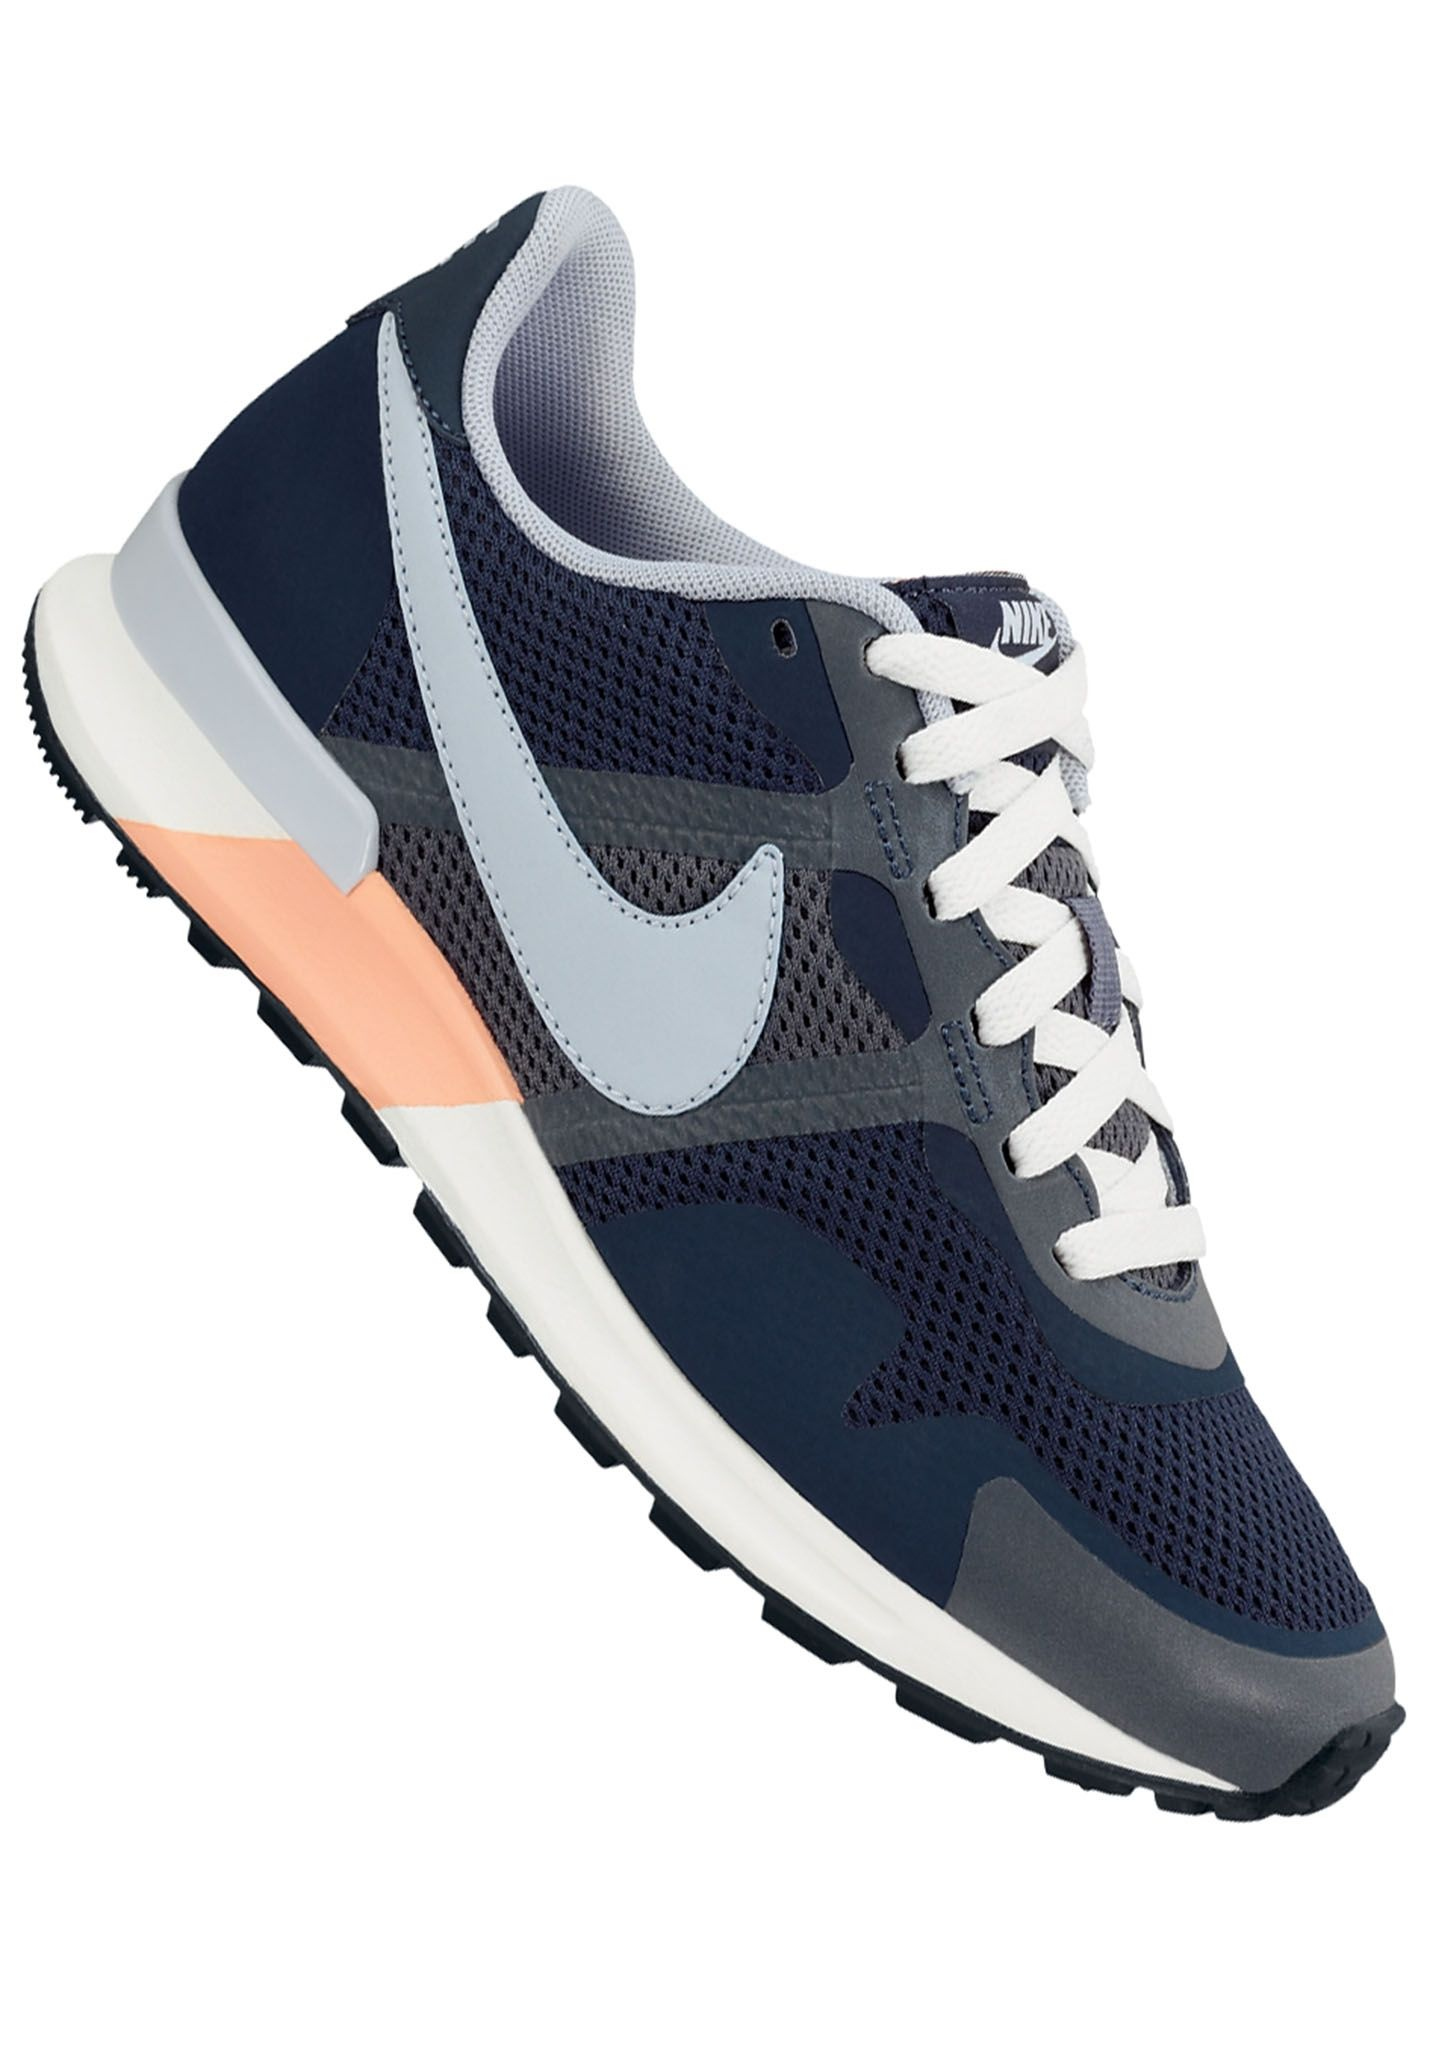 finest selection f36be 9b265 NIKE SPORTSWEAR Air Pegasus 8330 - Sneaker für Damen - Blau - Planet Sports